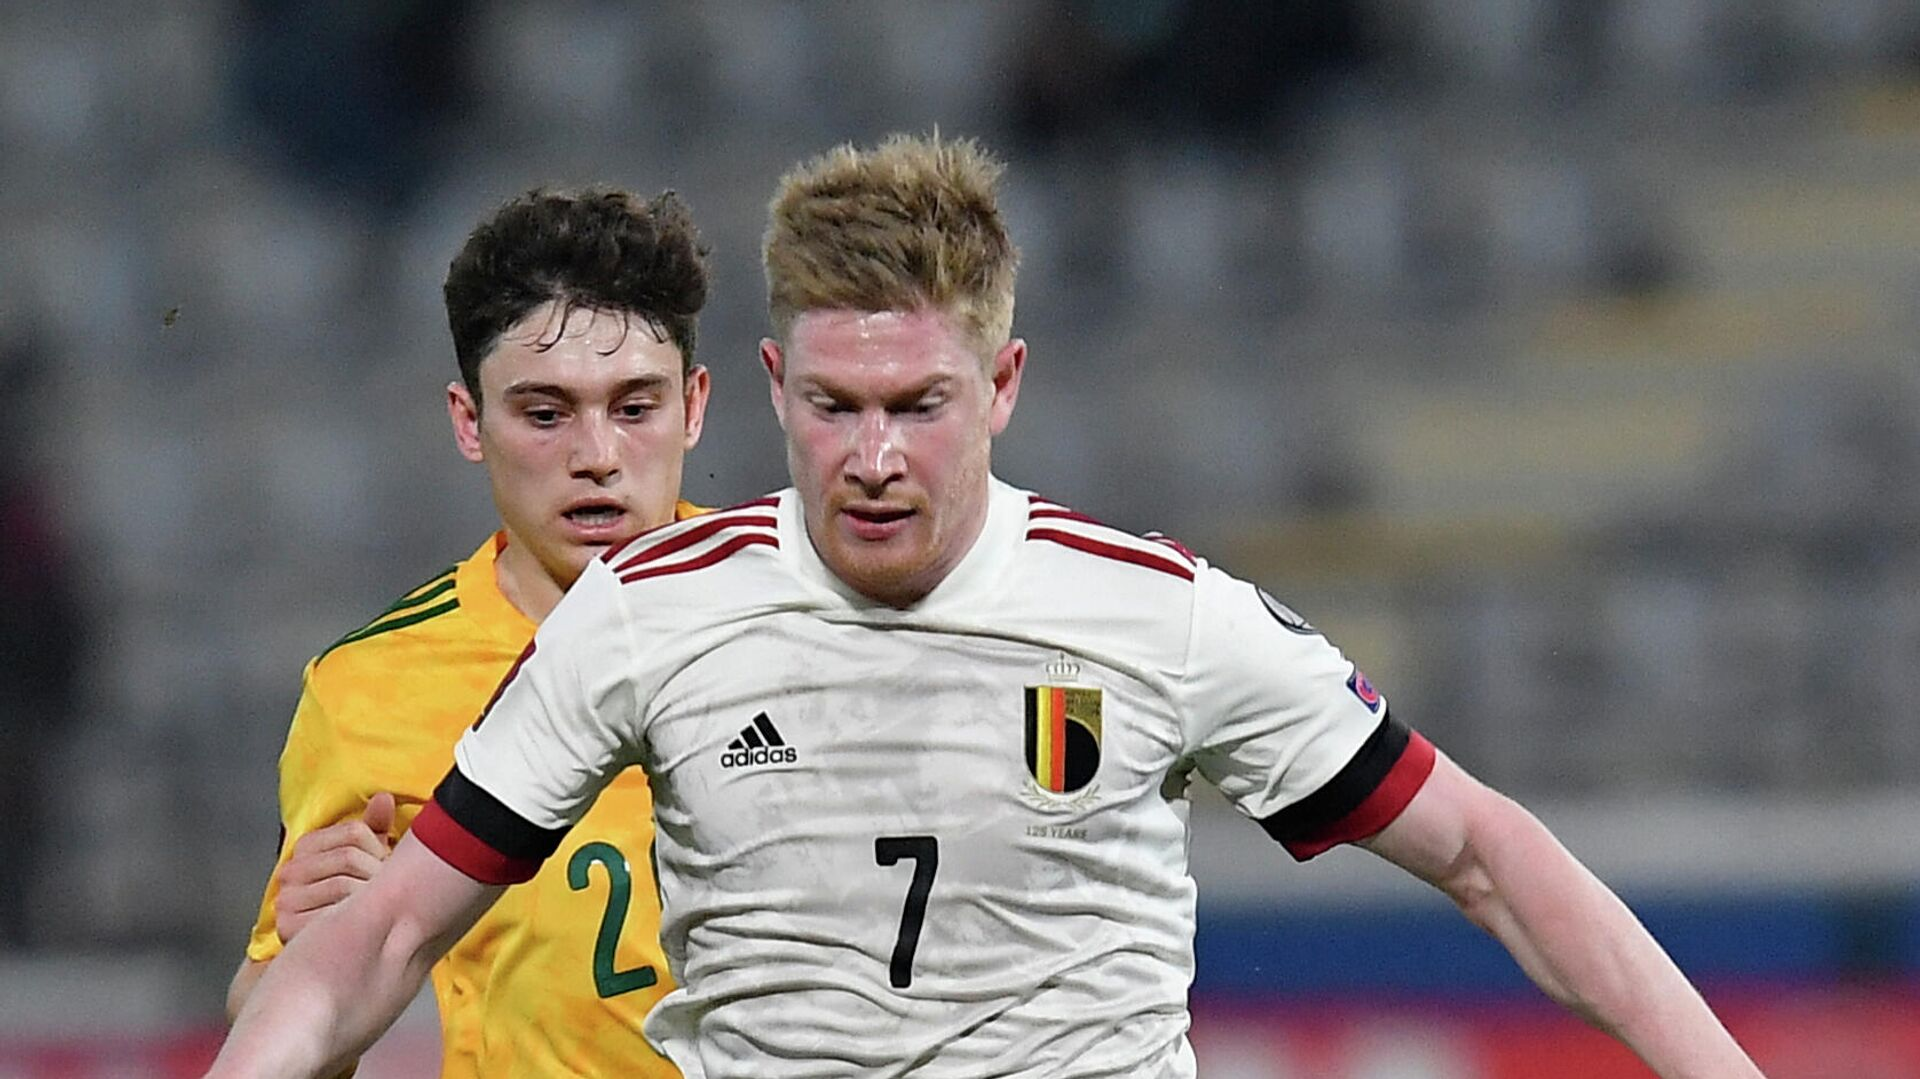 Belgium's midfielder Kevin De Bruyne (front) is challenged by Wales' forward Daniel James (R) during the FIFA World Cup Qatar 2022 qualification football match between Belgium and Wales at the Den Dreef Stadium in Leuven on March 24, 2021. (Photo by JOHN THYS / AFP) - РИА Новости, 1920, 25.03.2021